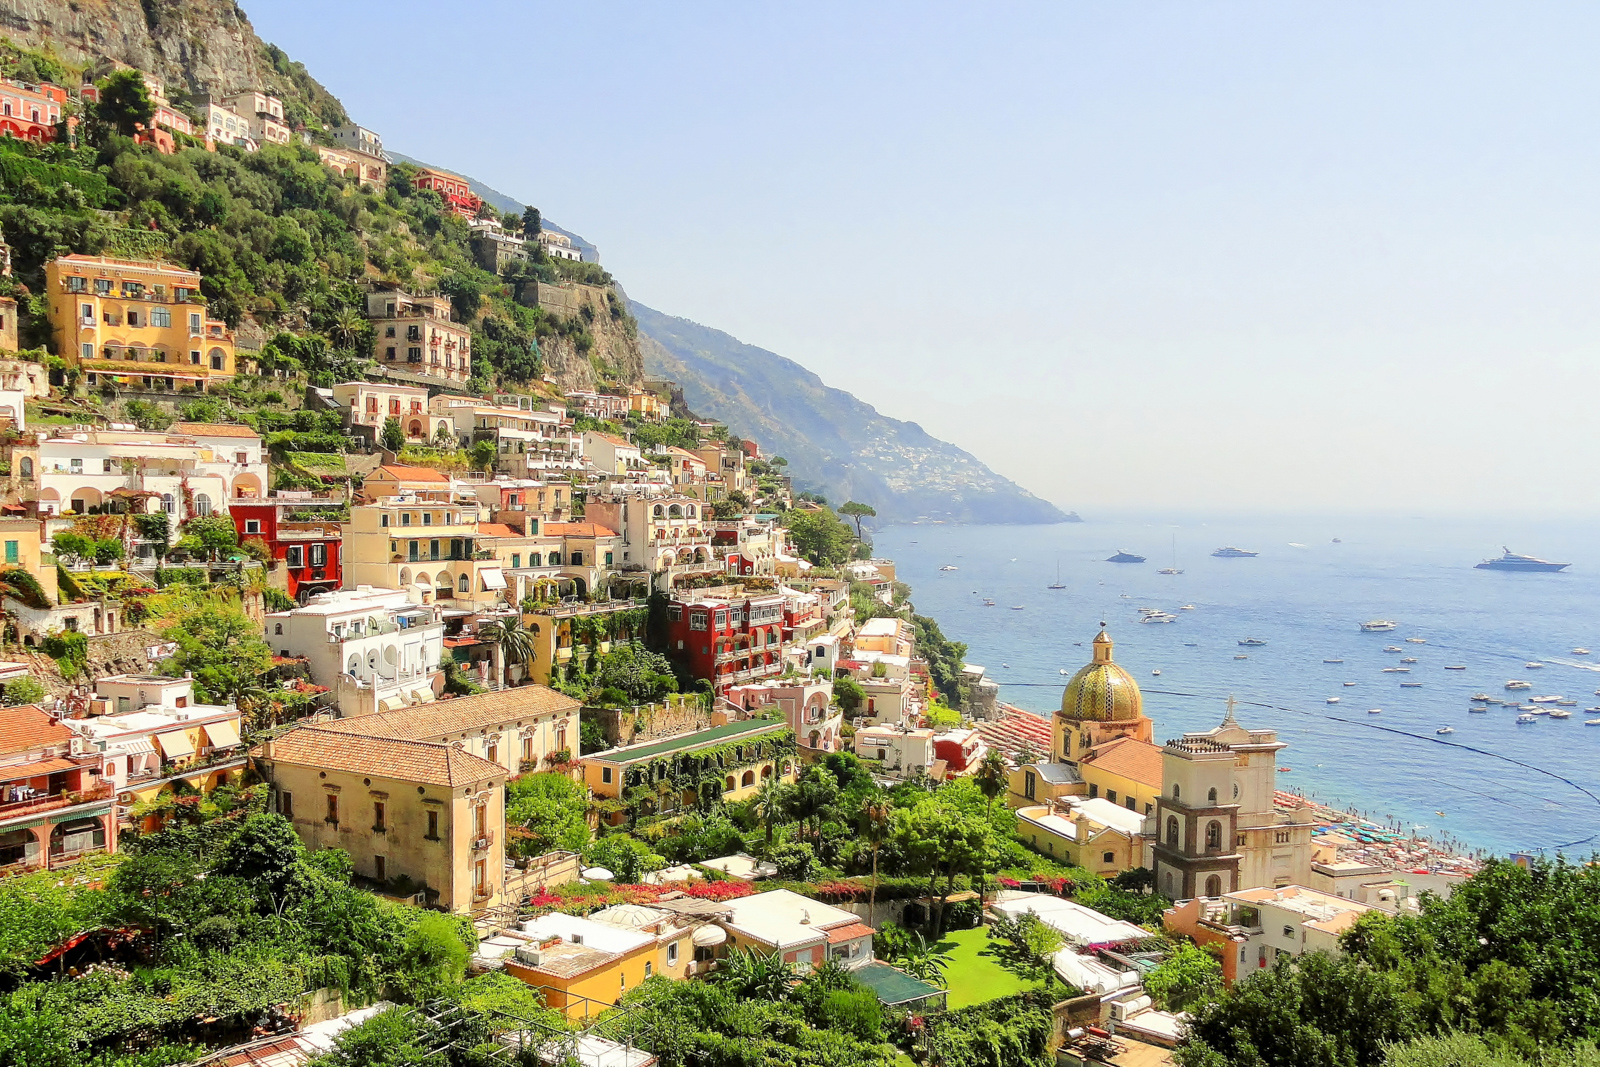 Top things to do in Amalfi Coast attractions like A view from the hill at colorful Positano town with the church and sea.